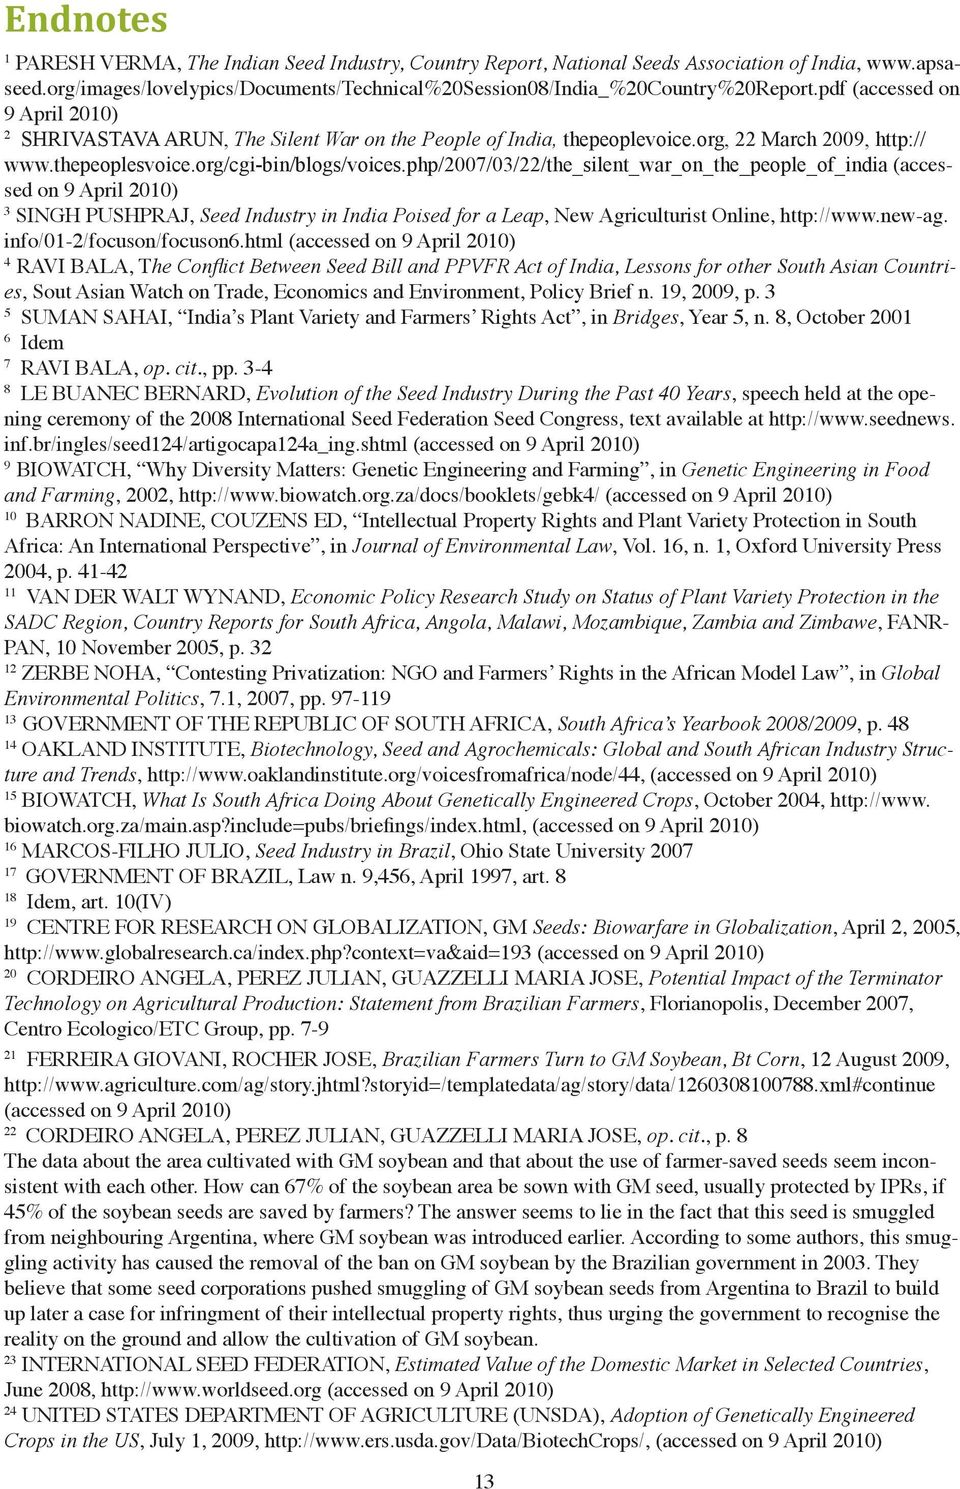 php/2007/03/22/the_silent_war_on_the_people_of_india (accessed on 9 April 2010) 3 SINGH PUSHPRAJ, Seed Industry in India Poised for a Leap, New Agriculturist Online, http://www.new-ag.